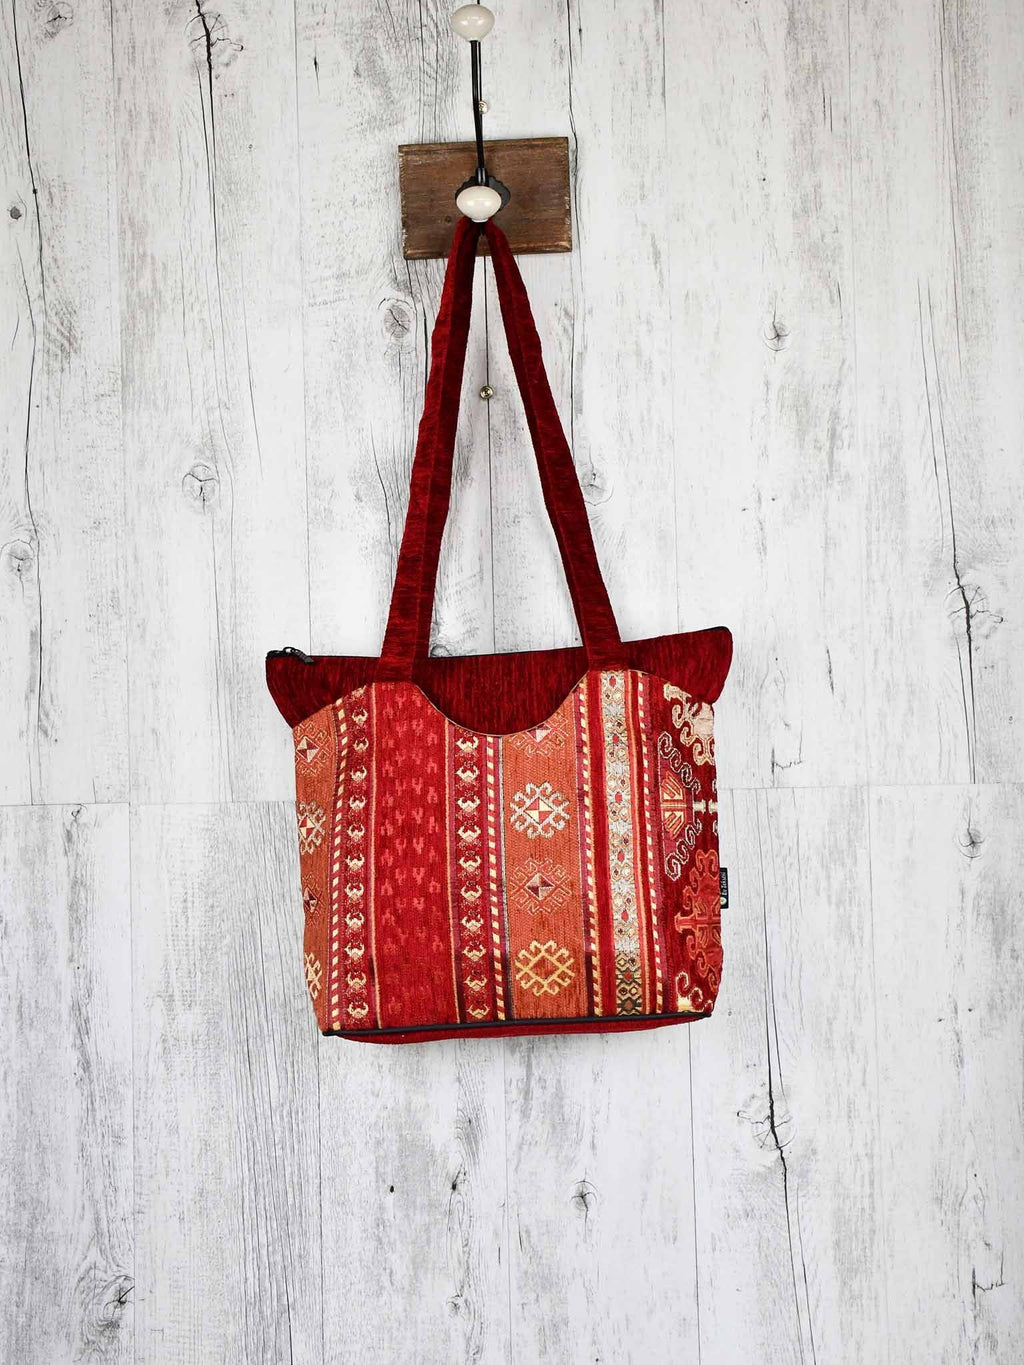 Turkish Handbag Tote Aztec Red Rusty Textile Sydney Grand Bazaar